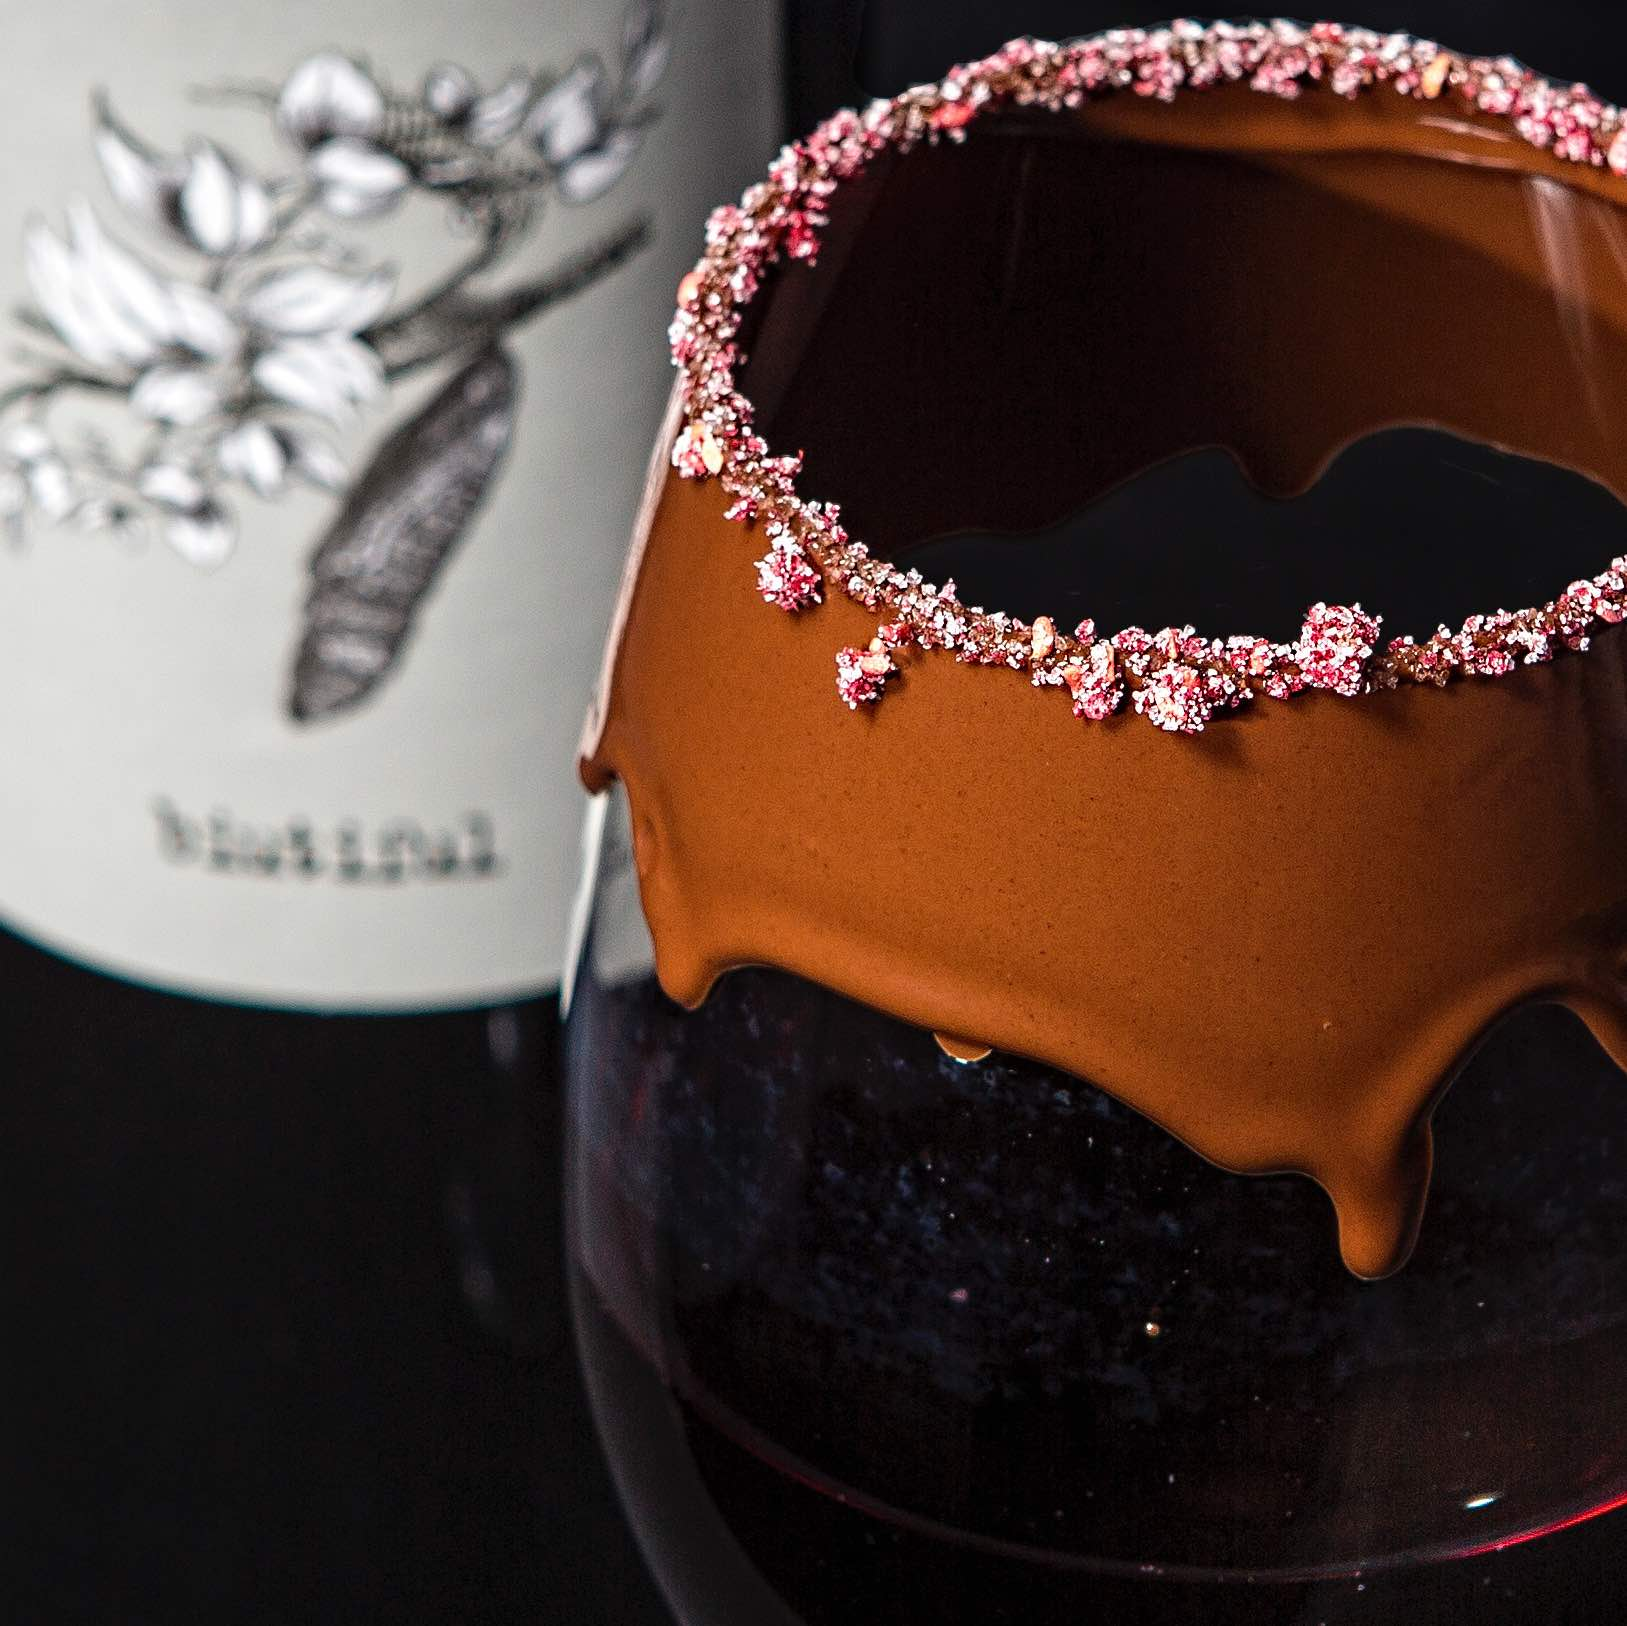 Berry Naughty - Malbec in a Semi-Sweet Chocolate Rimmed Wine Glass. Topped with Raspberry Sugar.